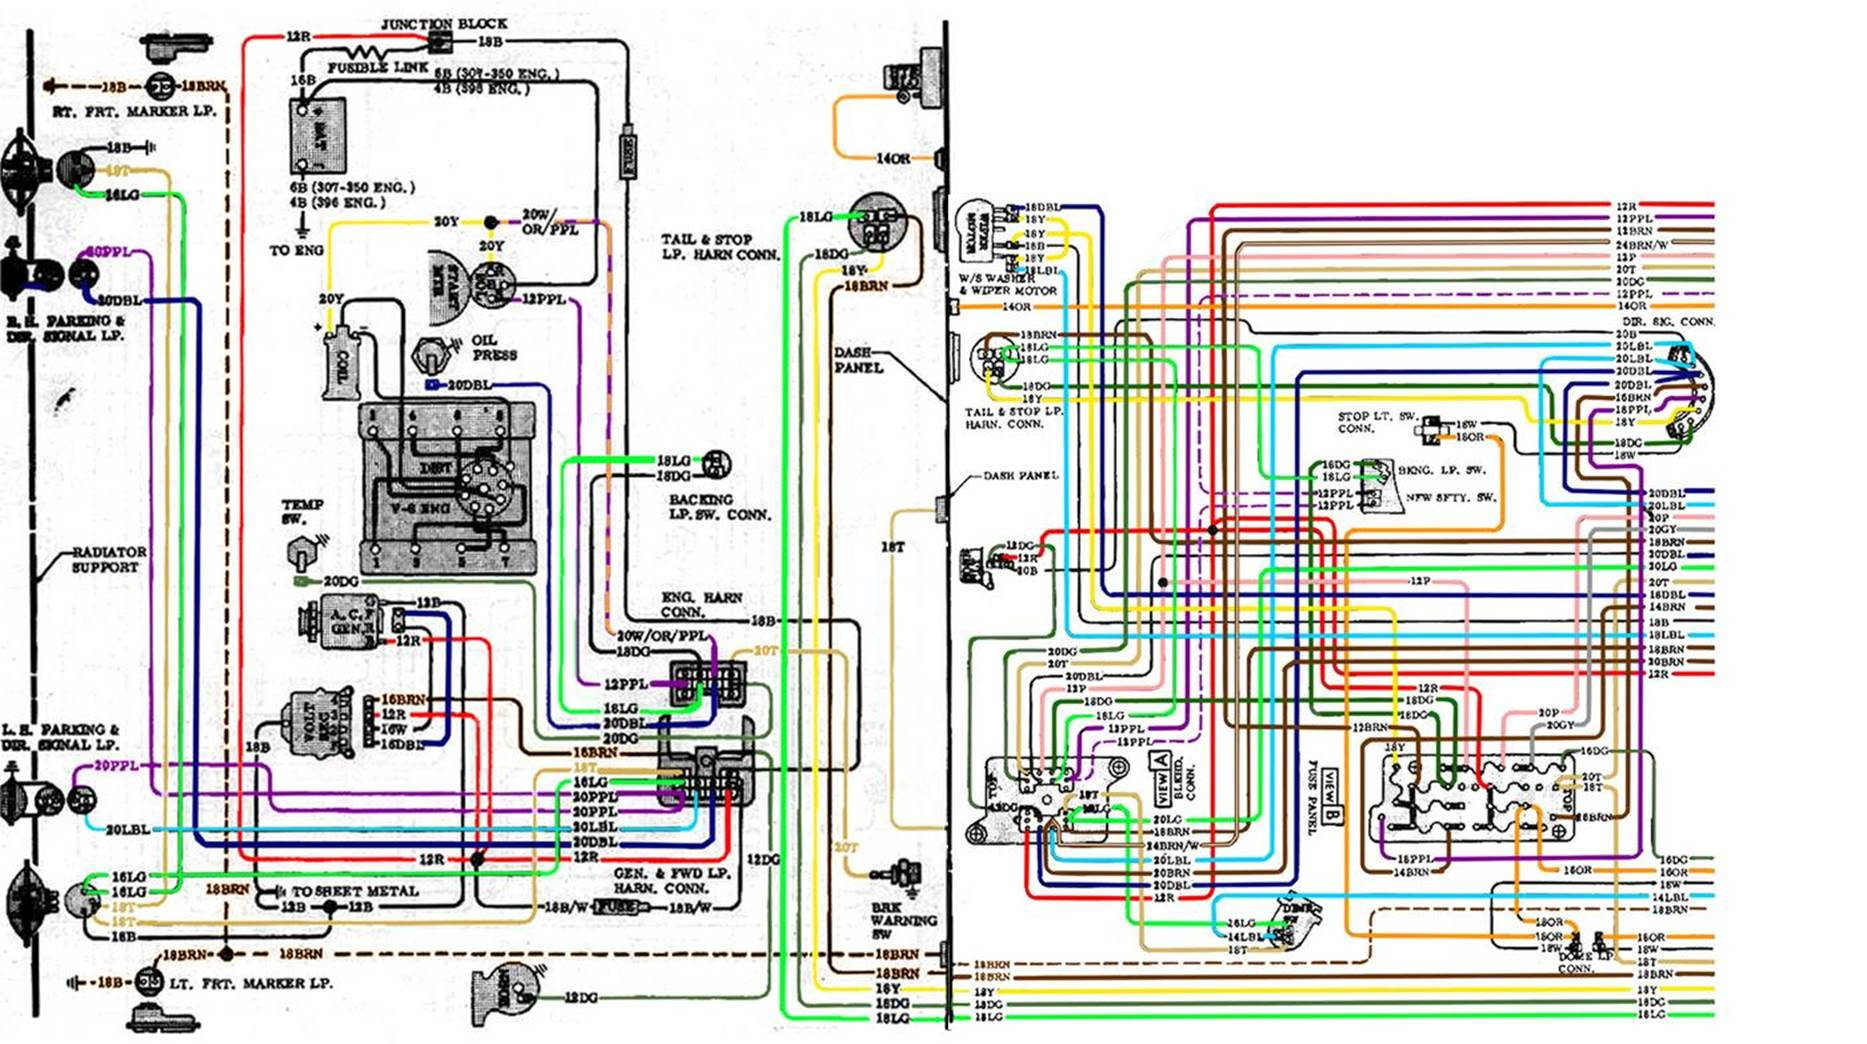 image002 67 72 chevy wiring diagram  at gsmx.co